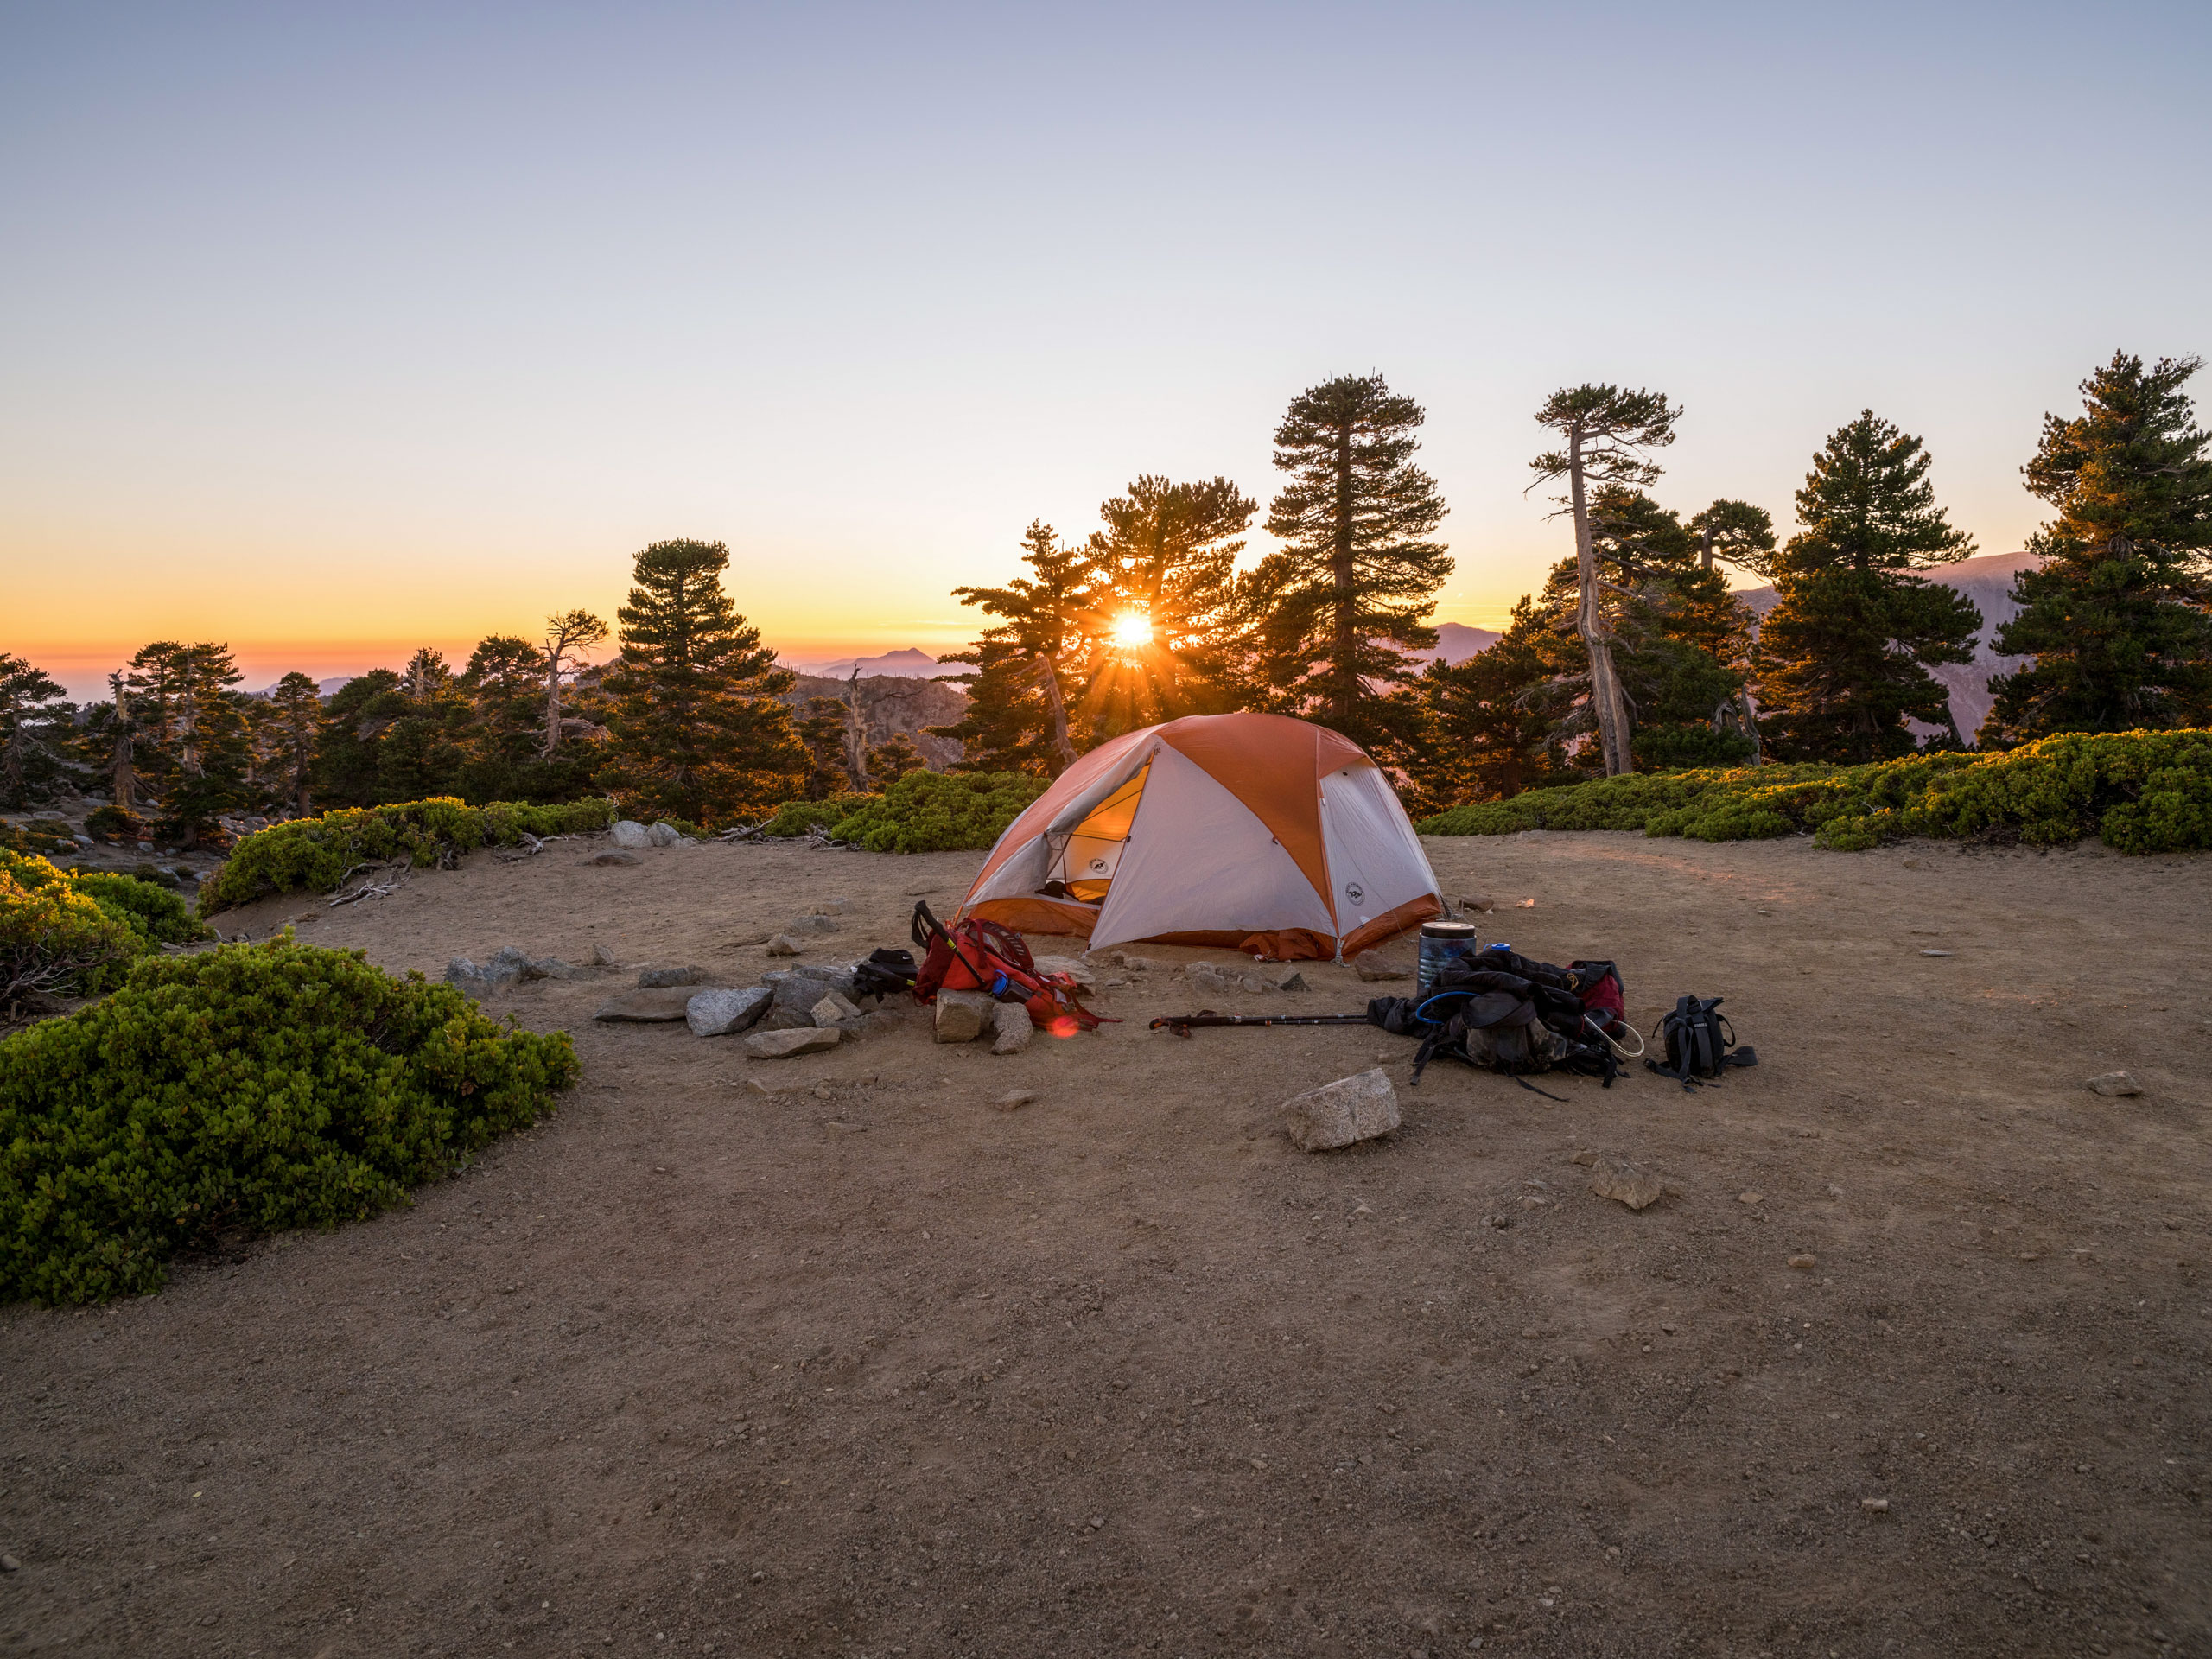 Sunrise sunset camping gear tent on mountain top lookout